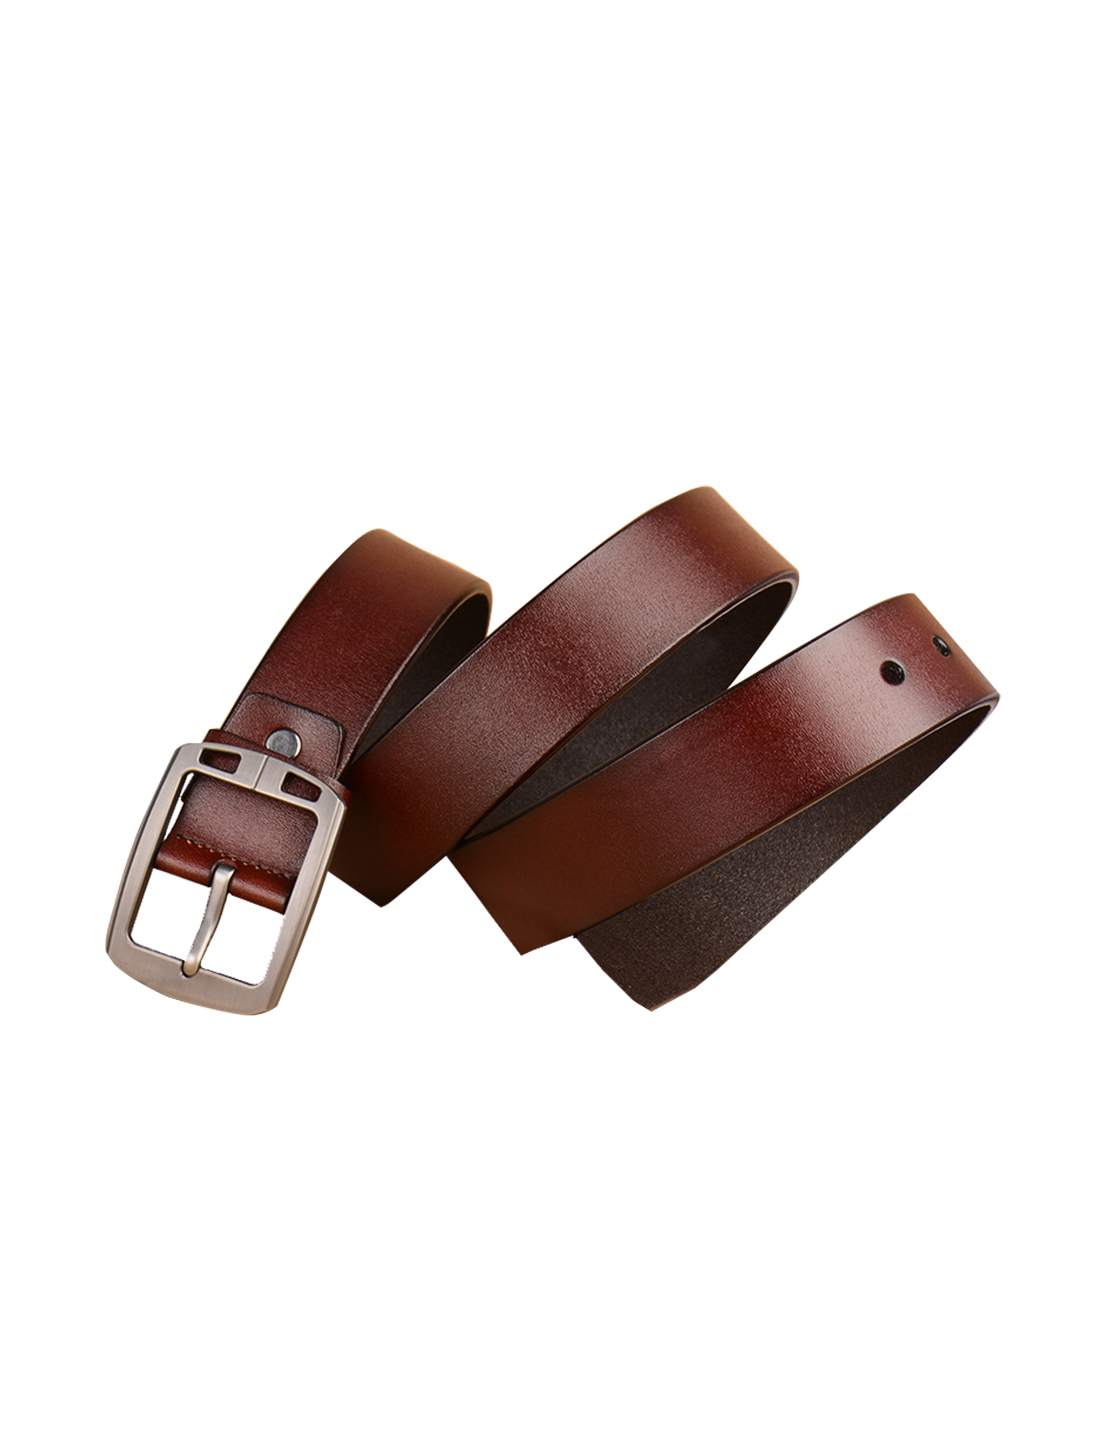 Mens Antique Single Pin Buckle Dress Leather Belt 38mm Width 1 1/2 Brown 125cm